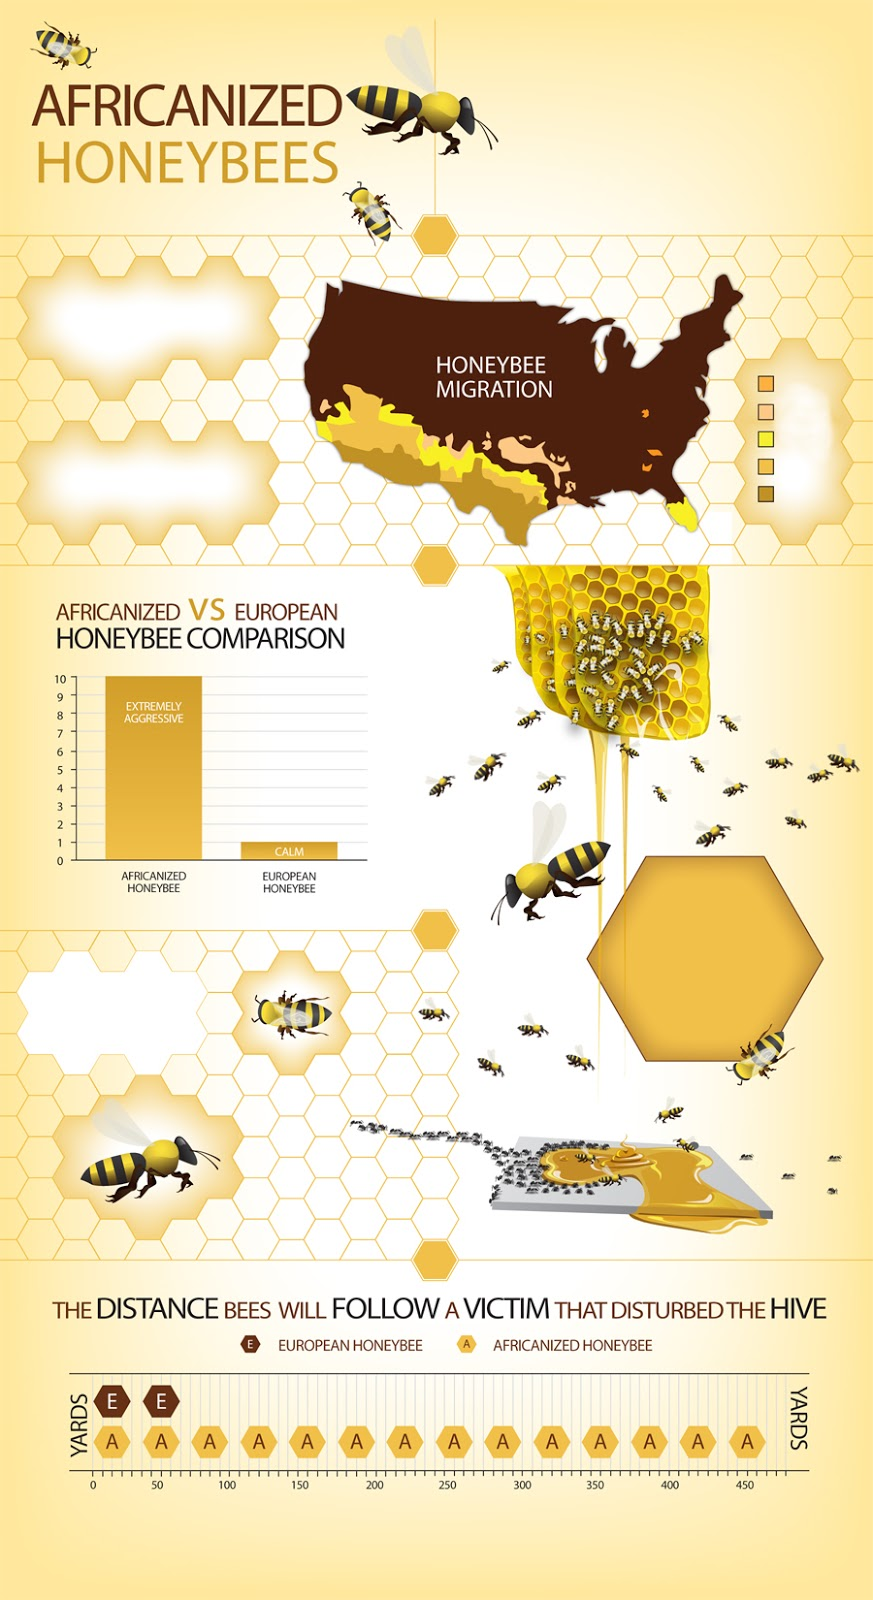 AFRICANIZACION DE ABEJAS EN LOS EEUU - AFRICANIZED HONEY BEES IN THE U.S.